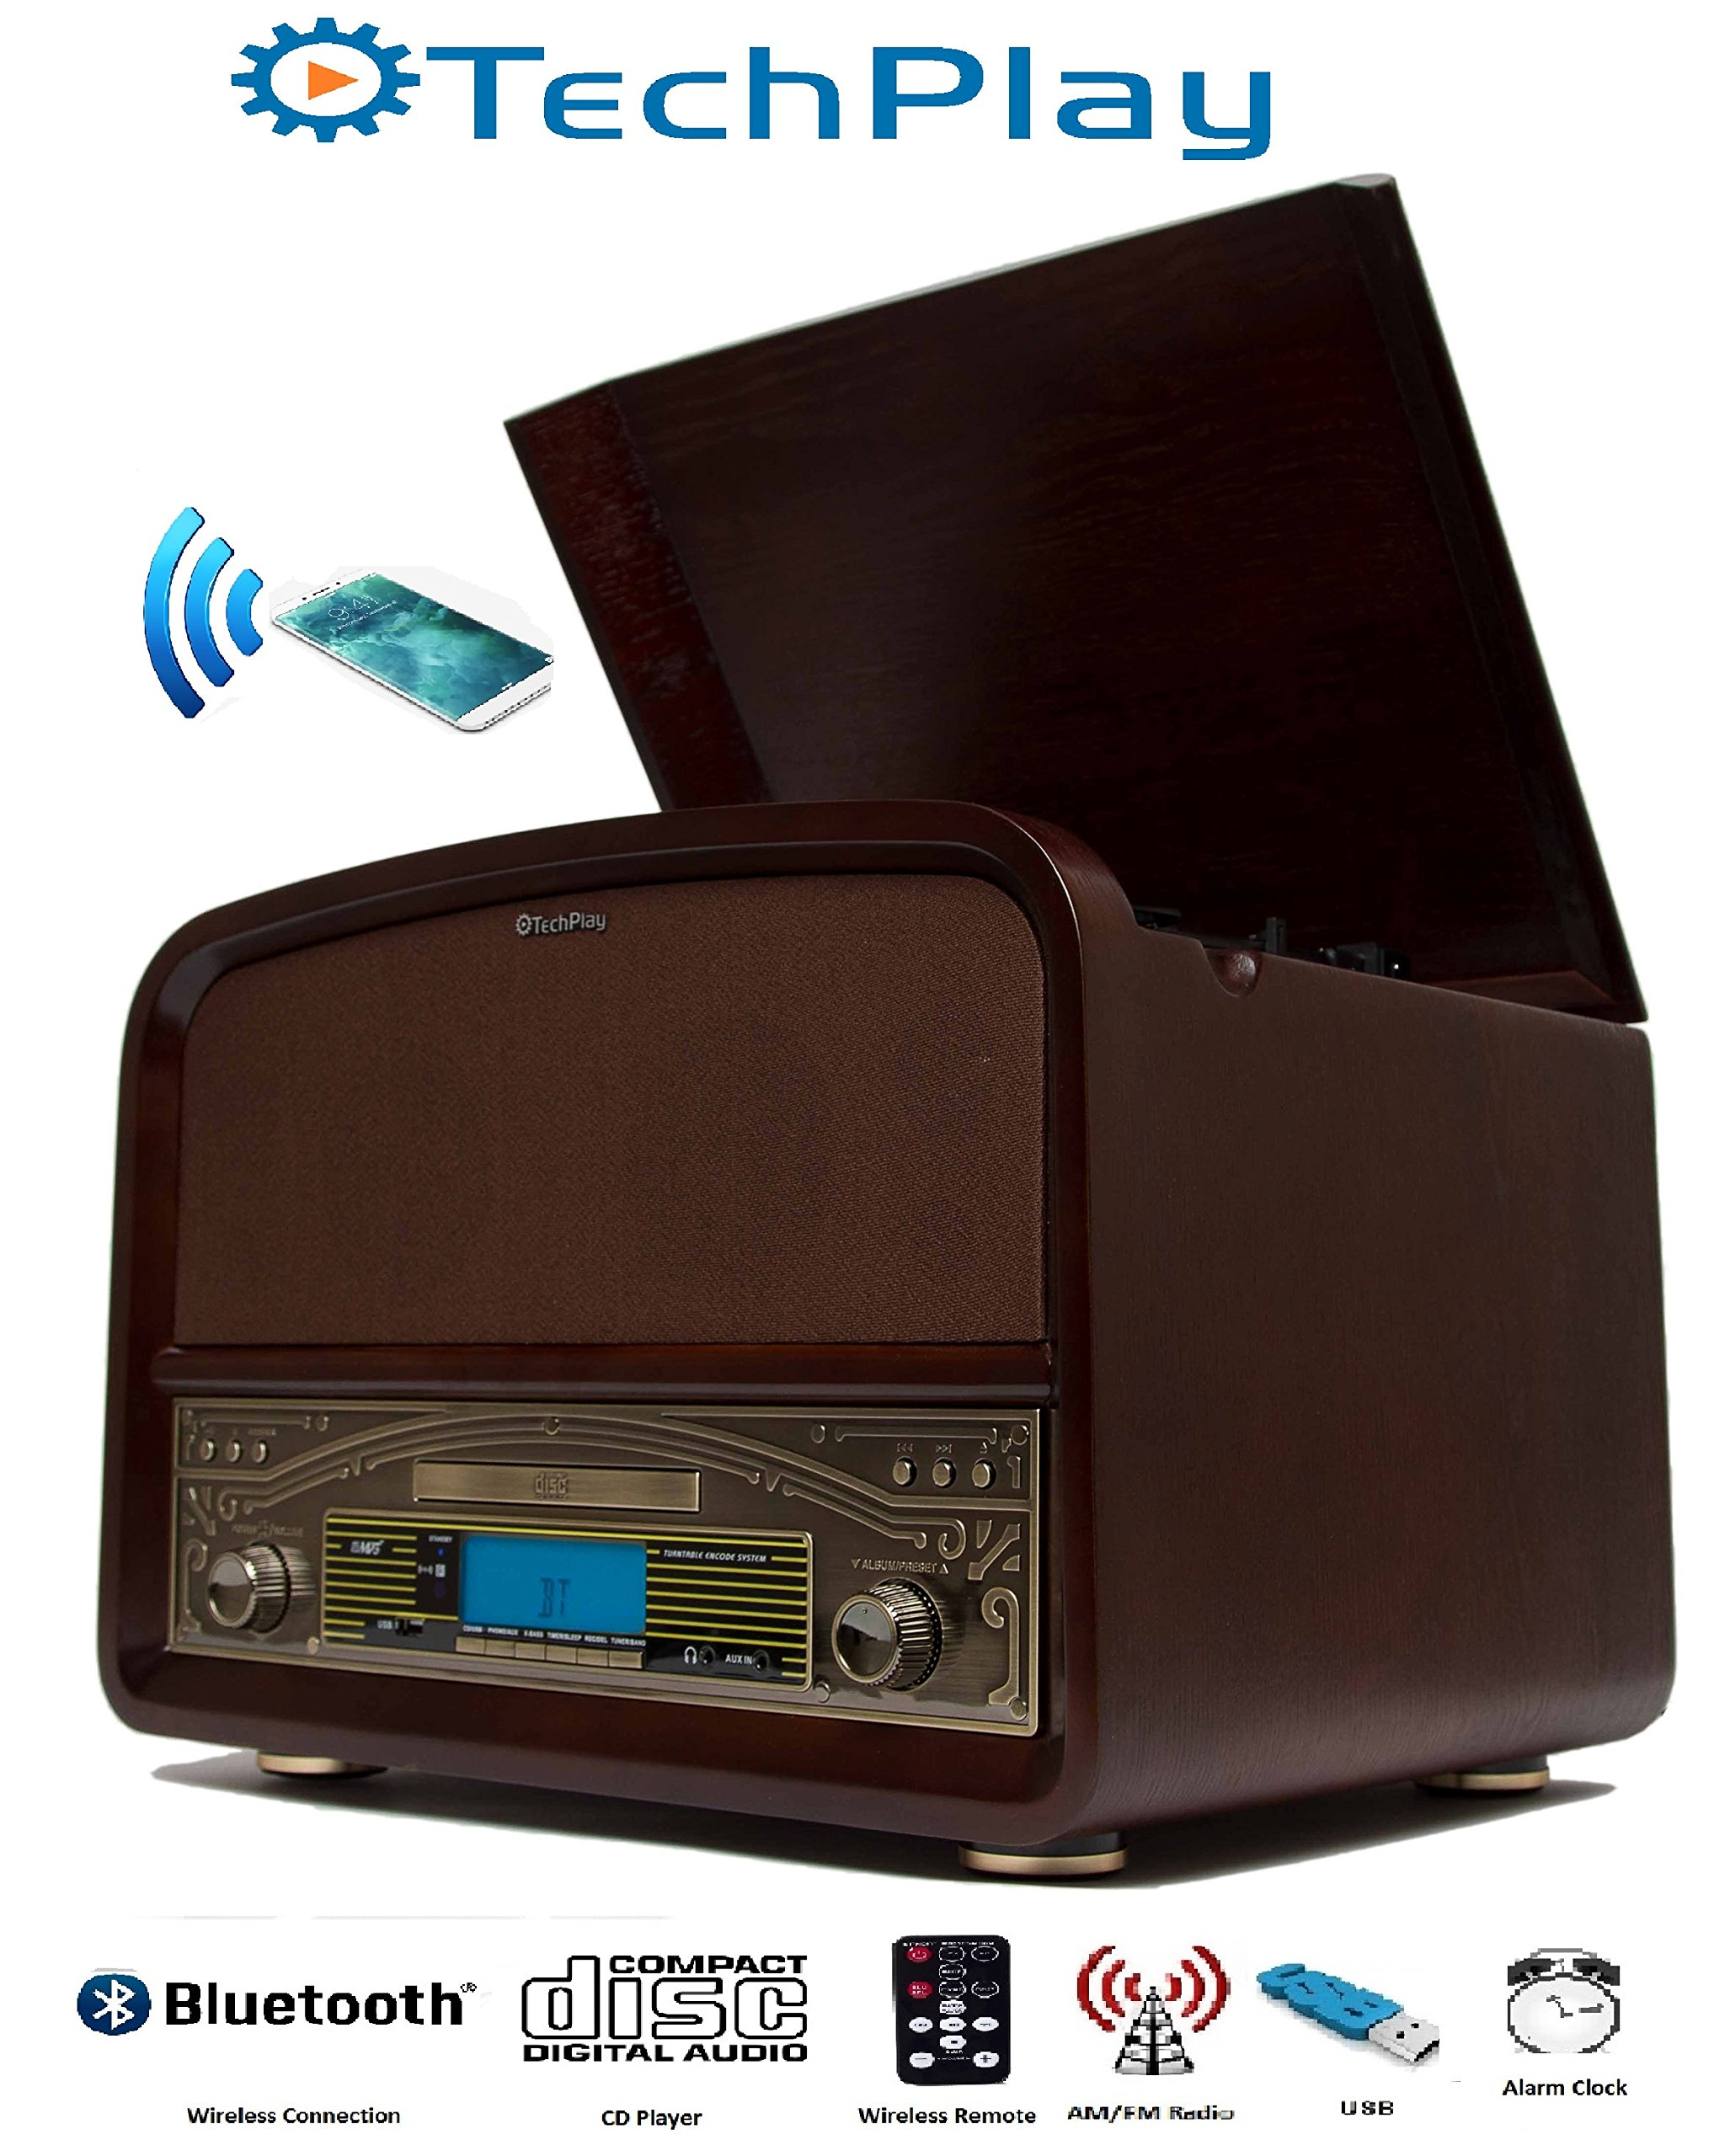 TechPlay TCP9560, High Power 20W Retro wooden 3 speed Bluetooth turntable, with CD Player, AM/FM radio, USB recording and playback with remote control. (Walnut Wood)